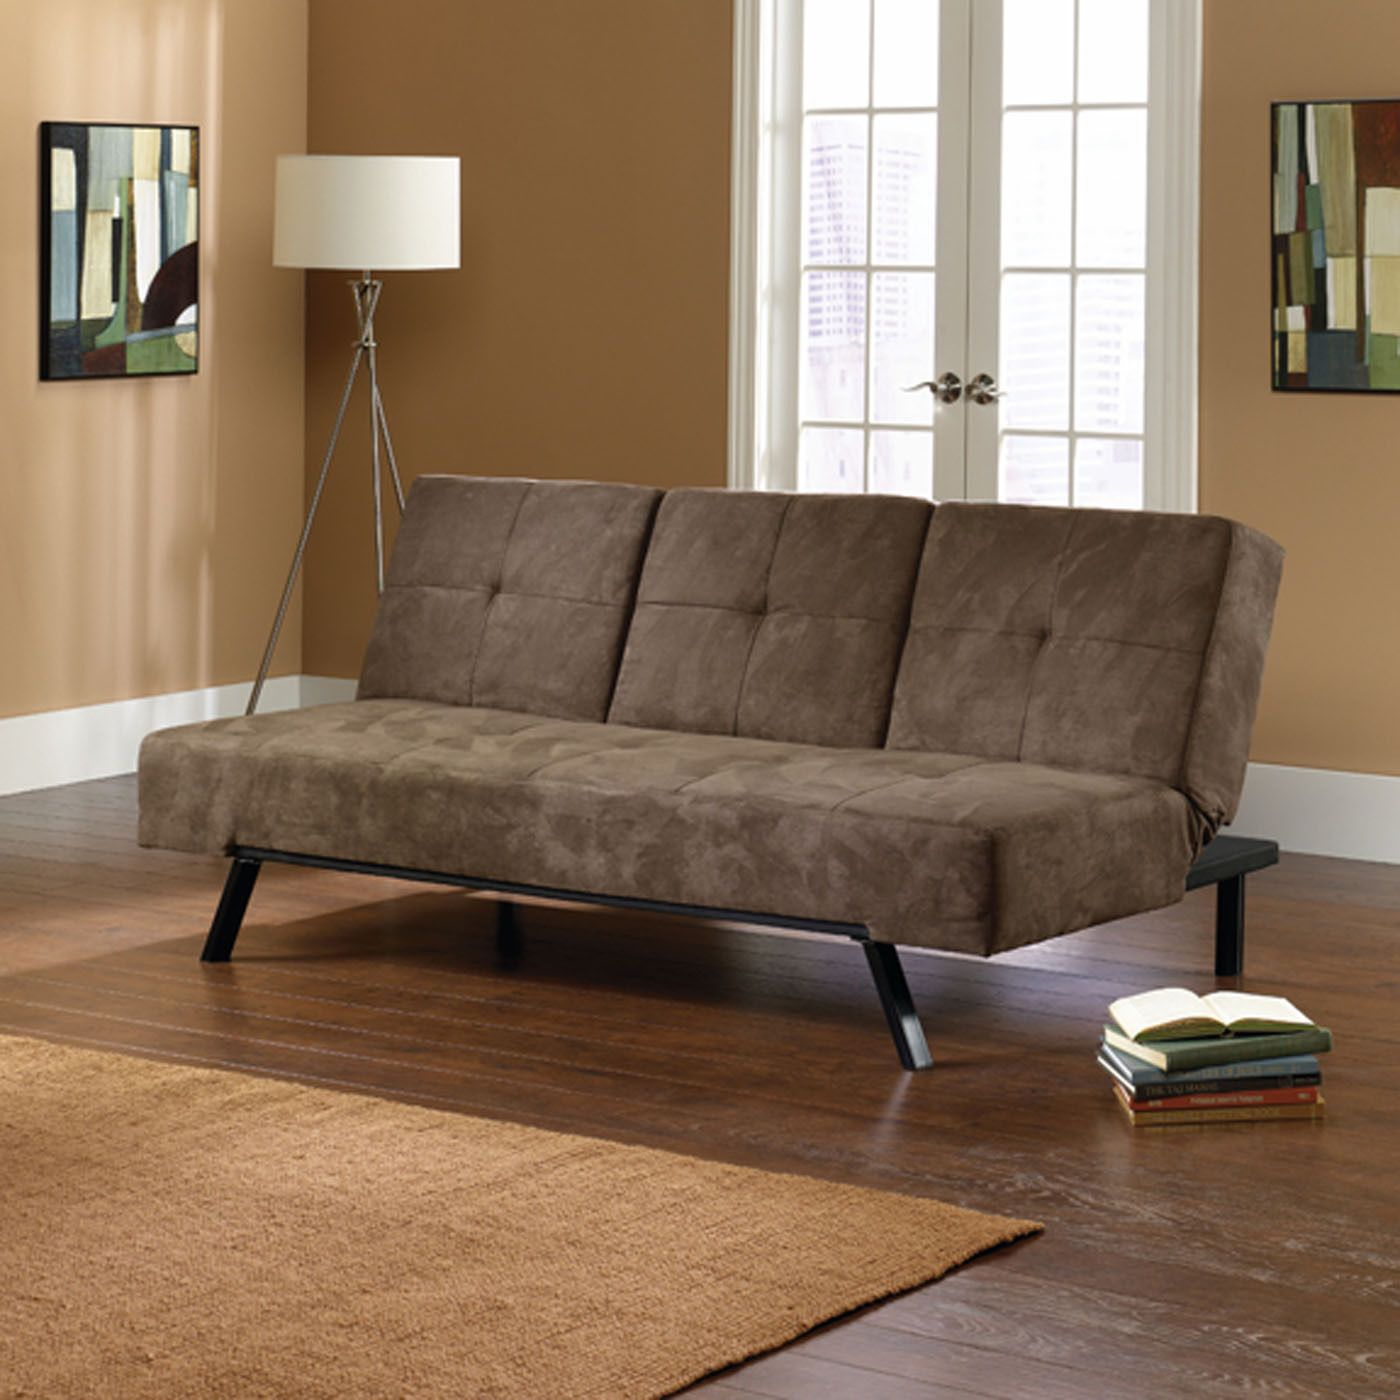 Perfect for your first place shopko Furniture